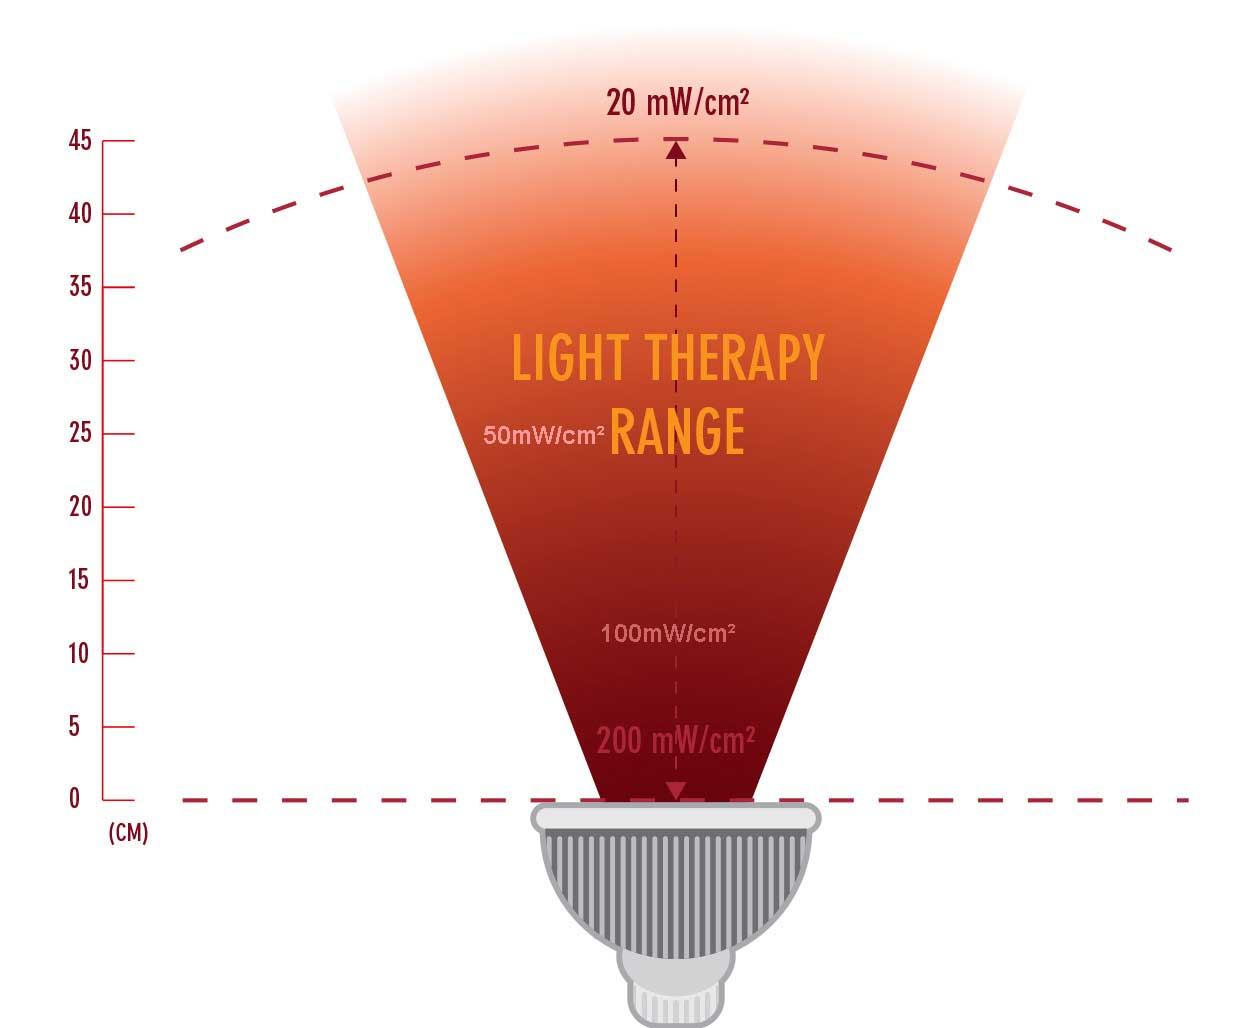 Everything You Need To Know About Red Light Therapy Analog Converter Circuit Additionally Led Alternating Flasher Can See The Figure Of 200mw Cm2 When Hard Up Against Unit But Only A 20mw 40cm Away Most People Arent Going Press Their Bodies